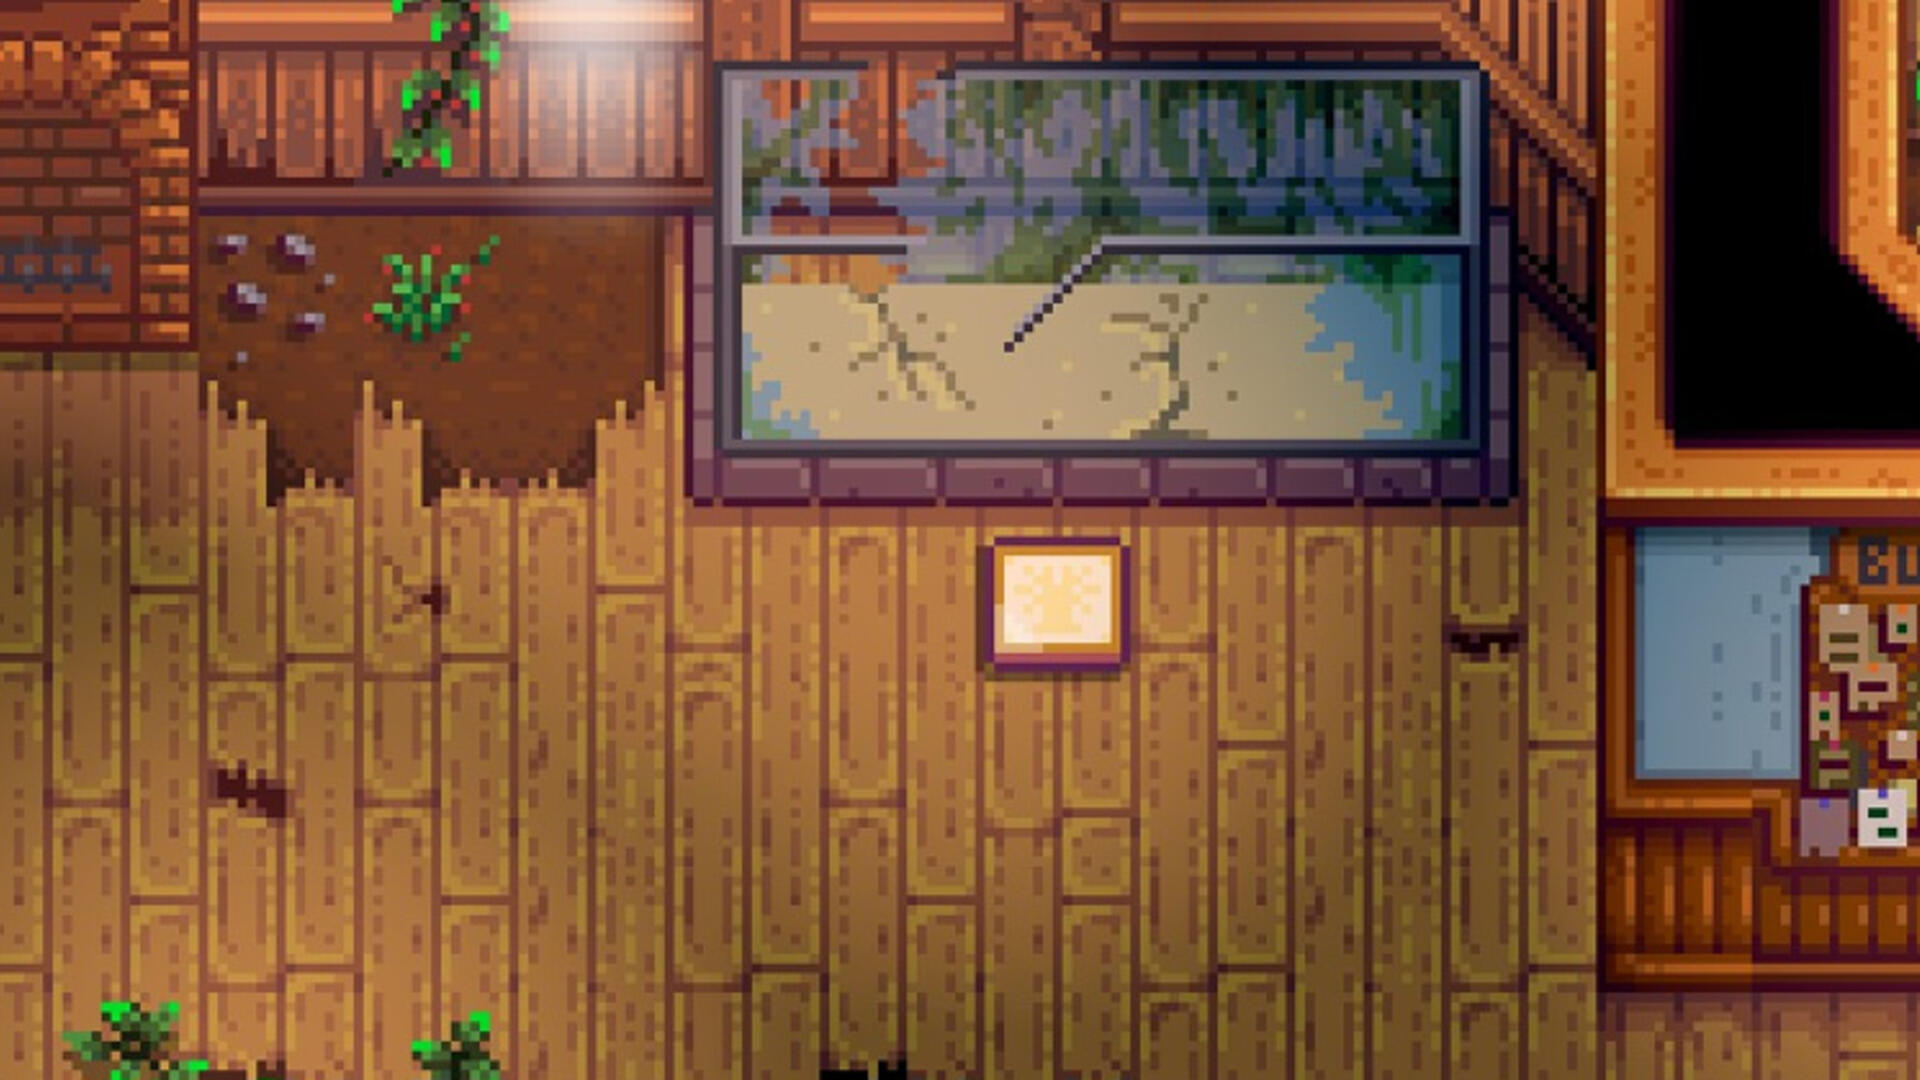 With Stardew Valley, Harvest Moon Finally Has a True Successor